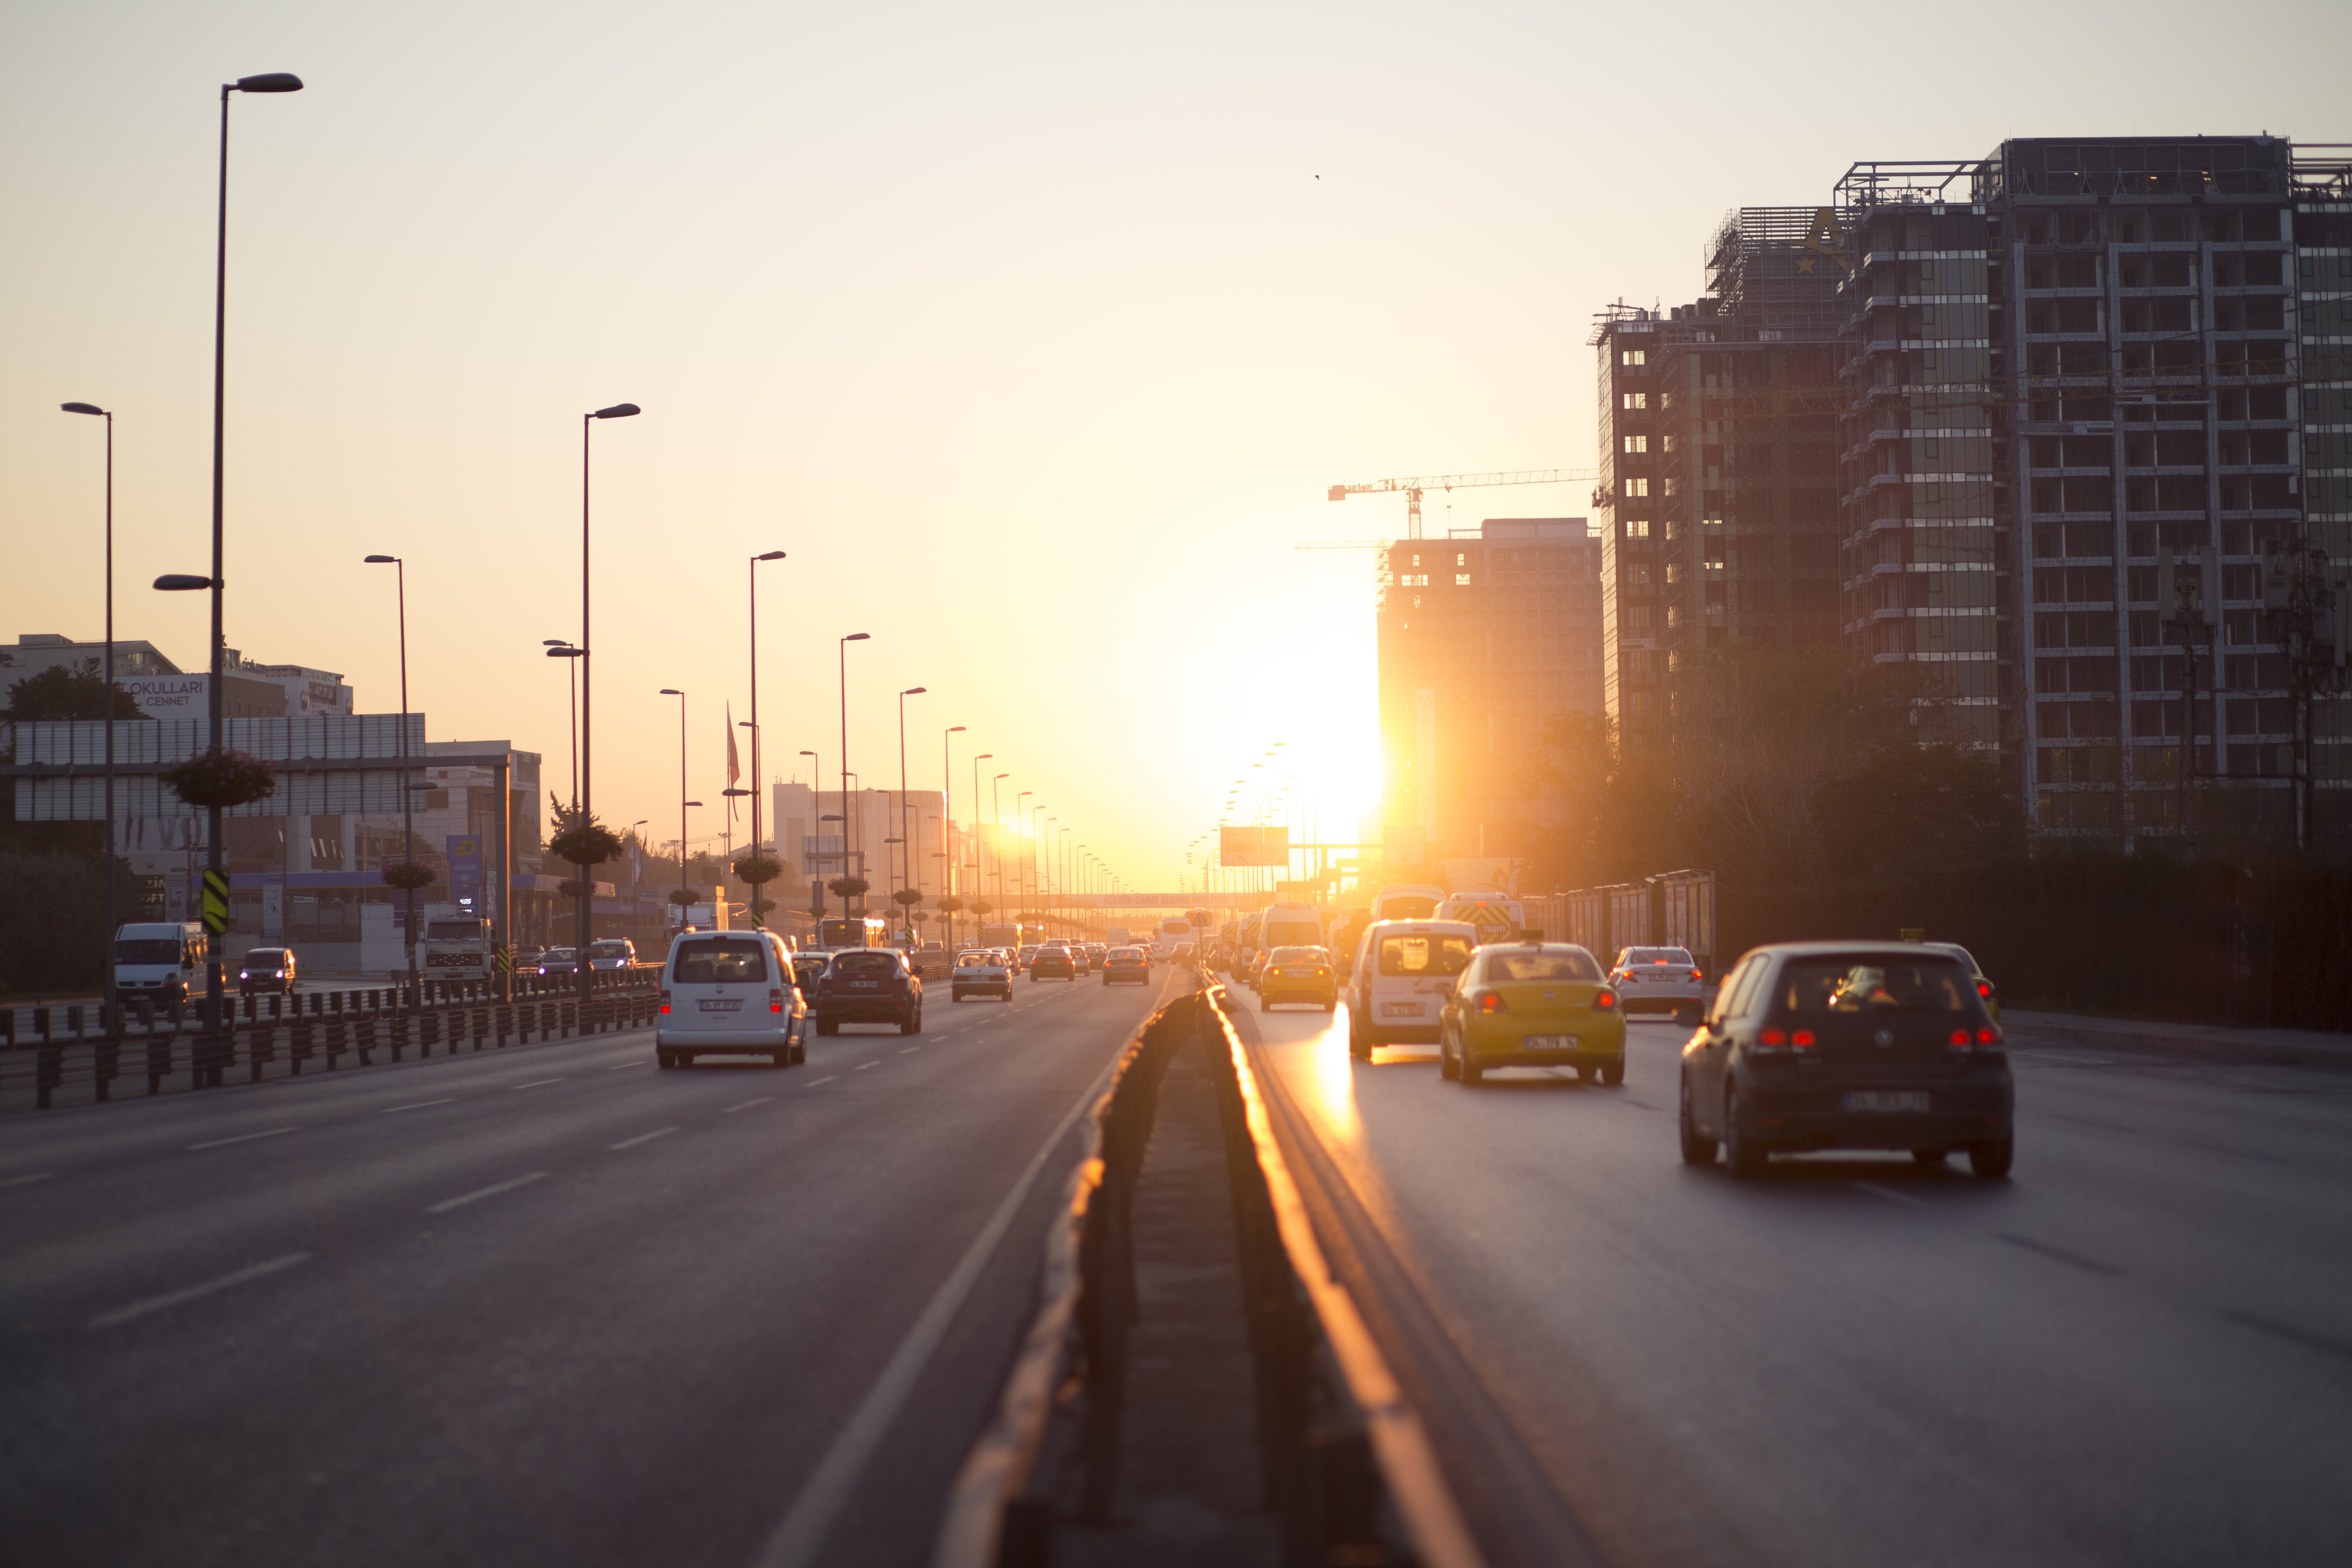 vehicles on highway near buildings during golden hour